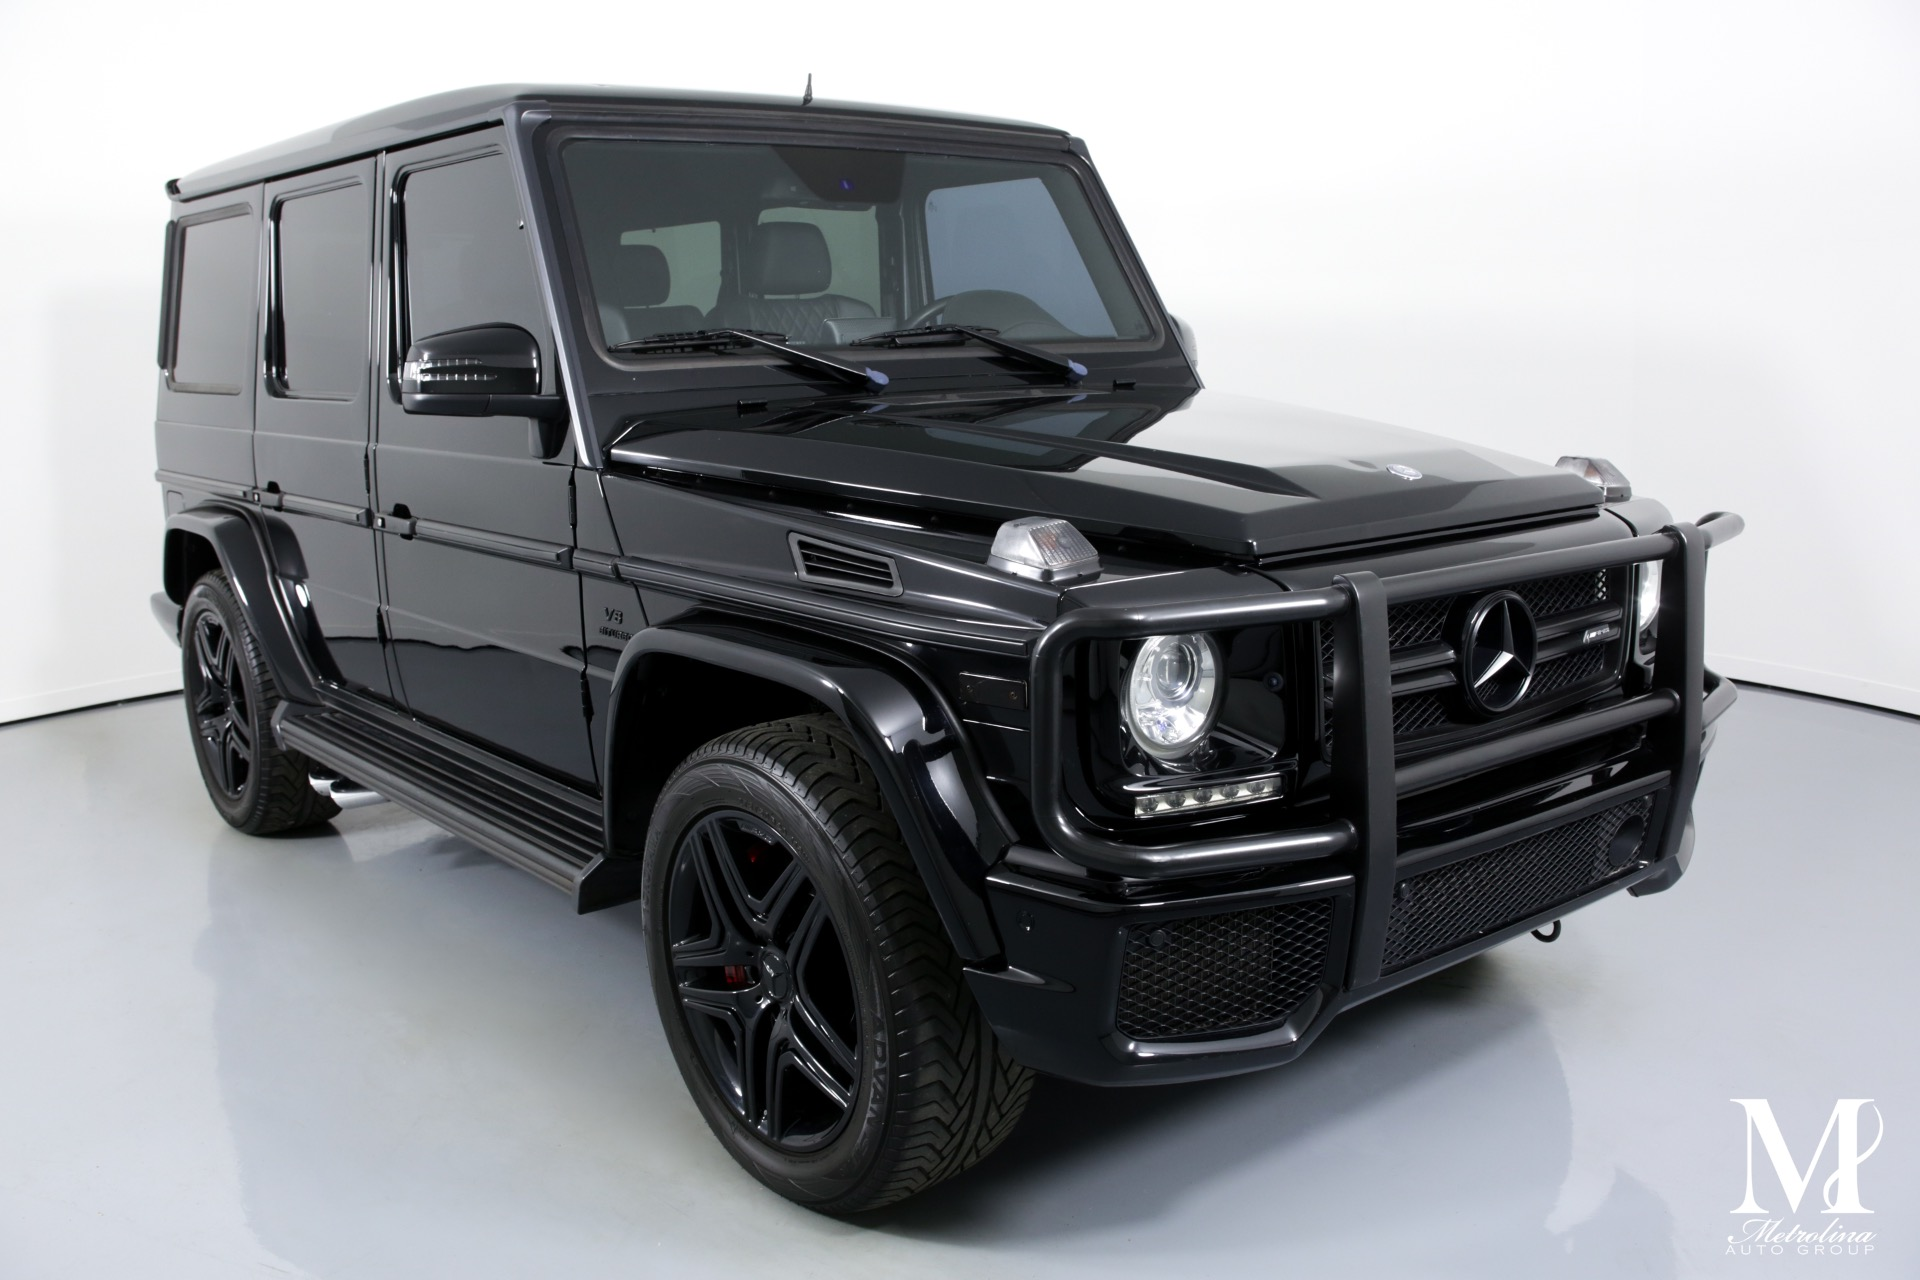 Used 2015 Mercedes-Benz G-Class G 63 AMG for sale Sold at Metrolina Auto Group in Charlotte NC 28217 - 2